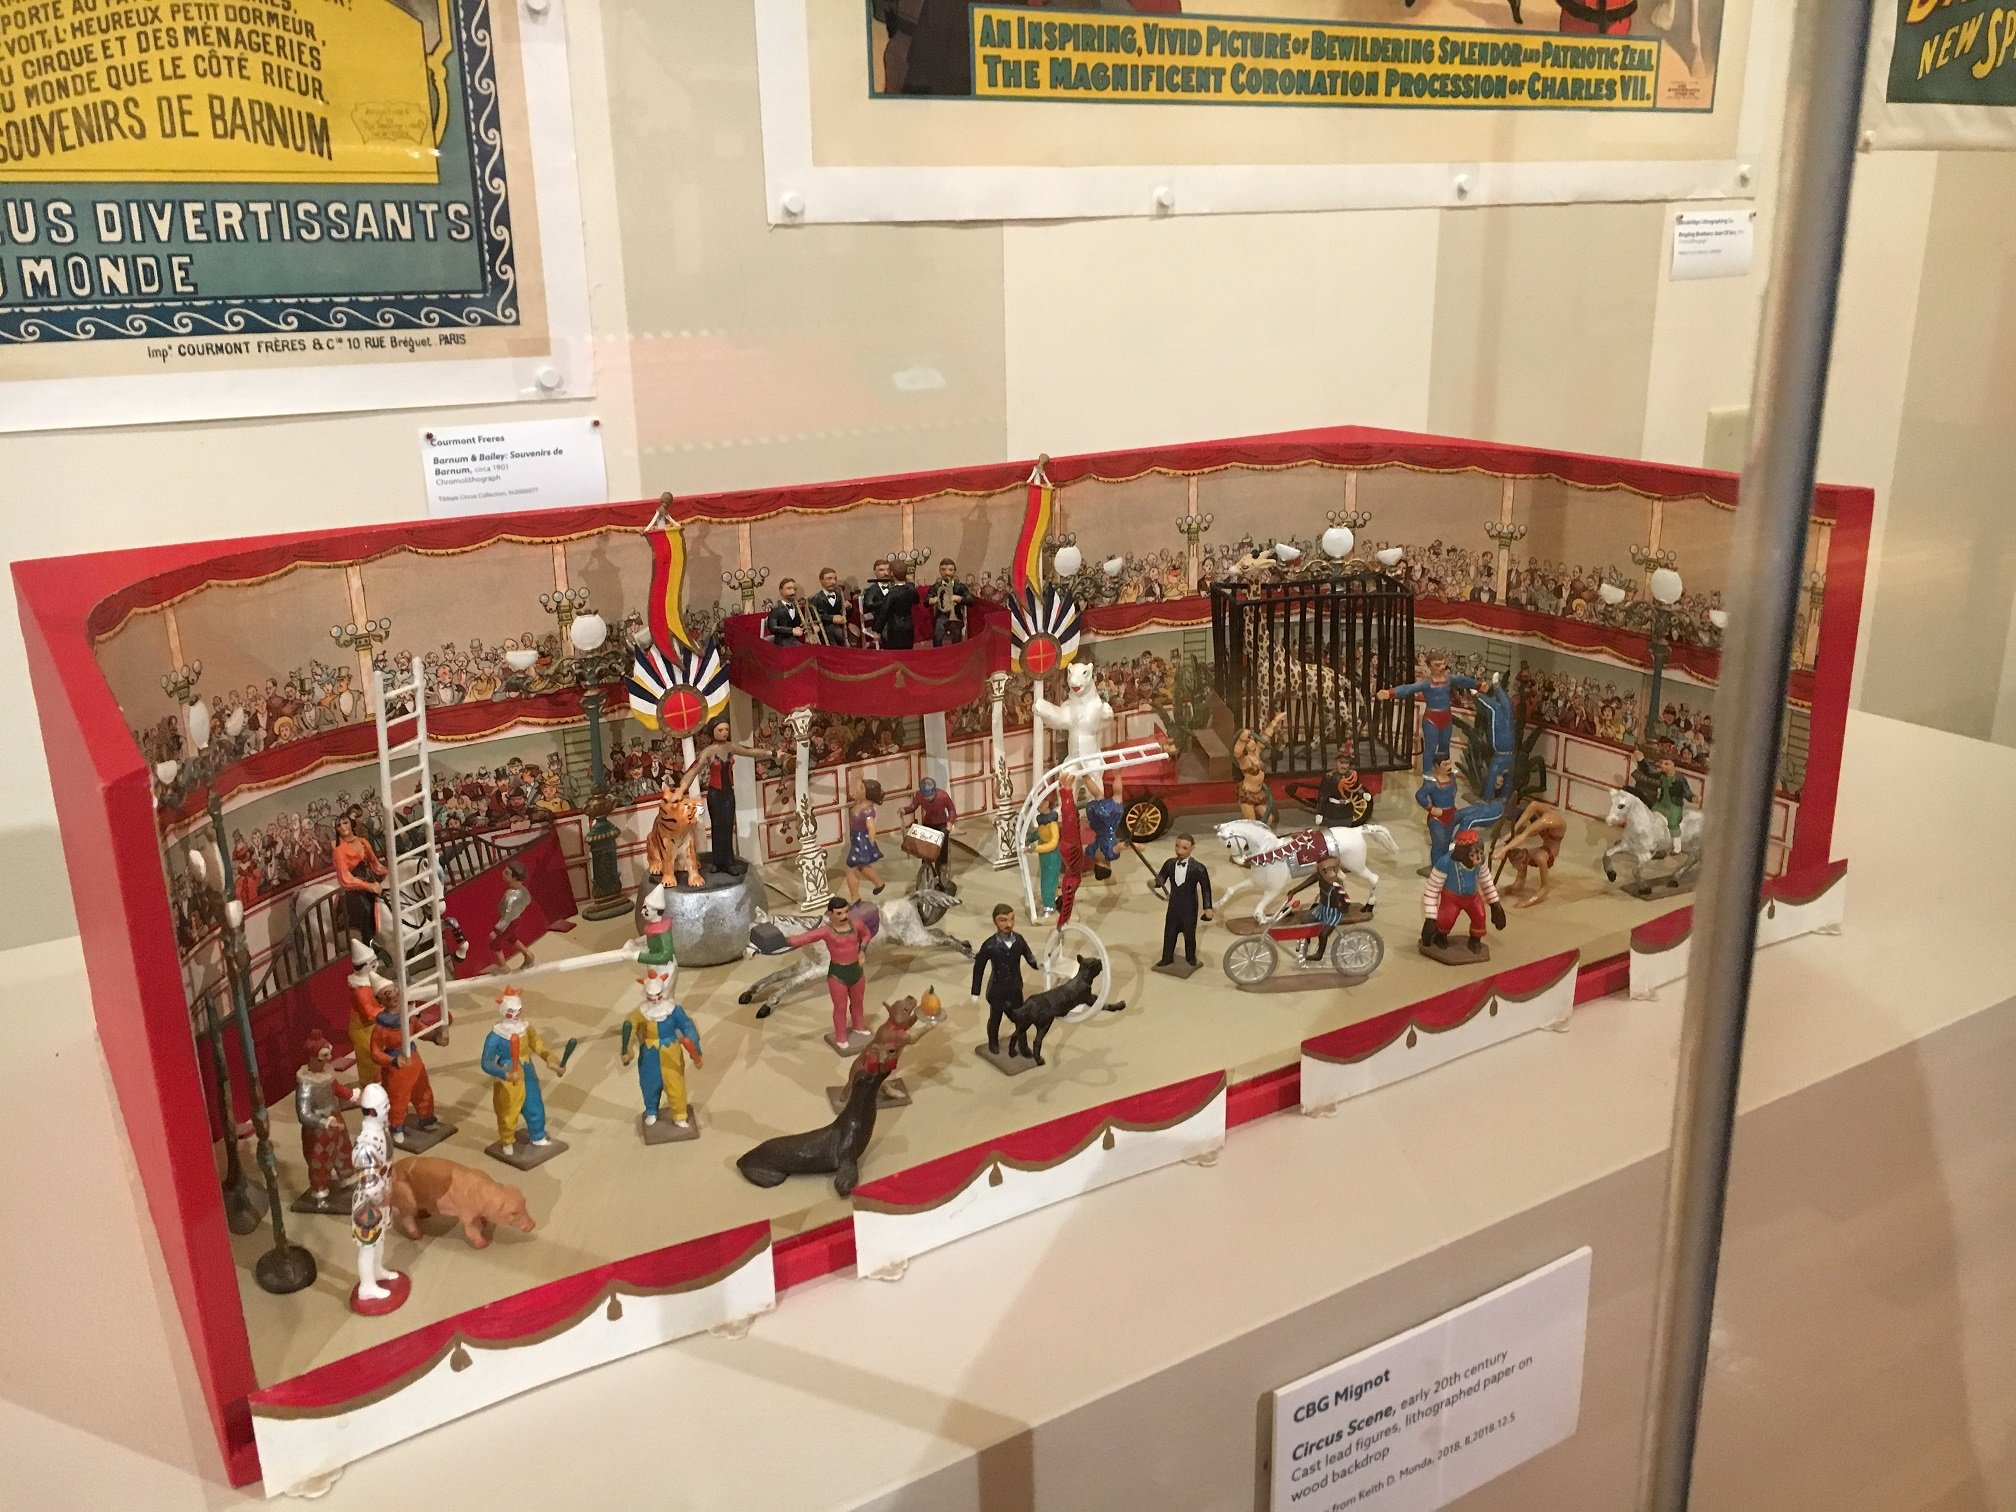 19th Century Circus Toy Diorama in A Child's Dream Exhibition at The Ringling